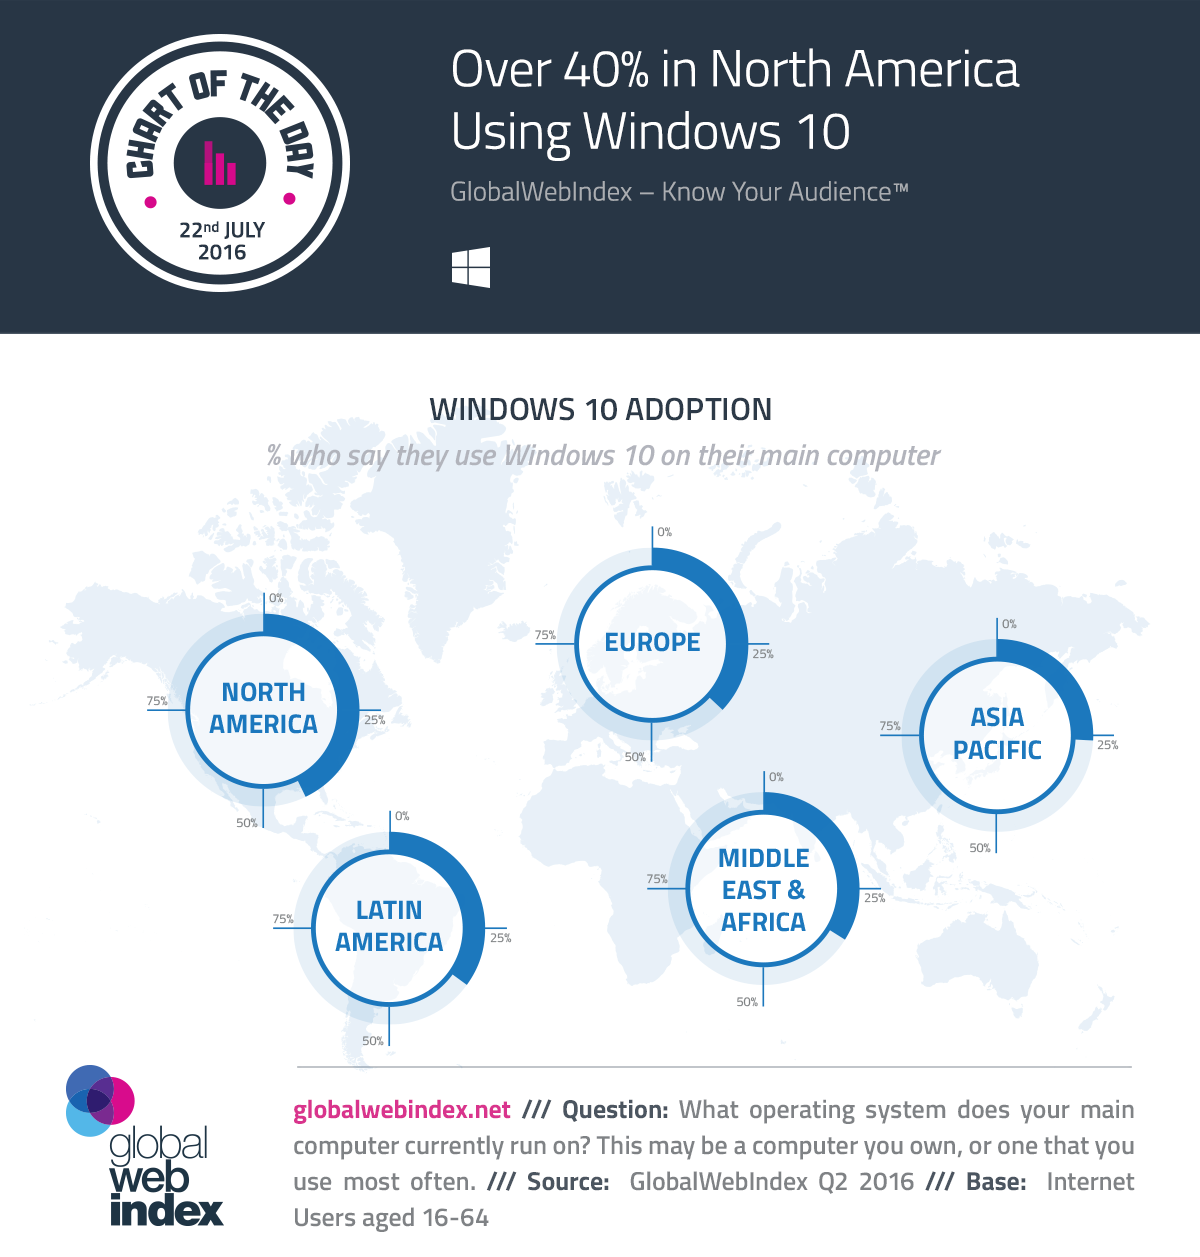 Over 40% in North America Using Windows 10